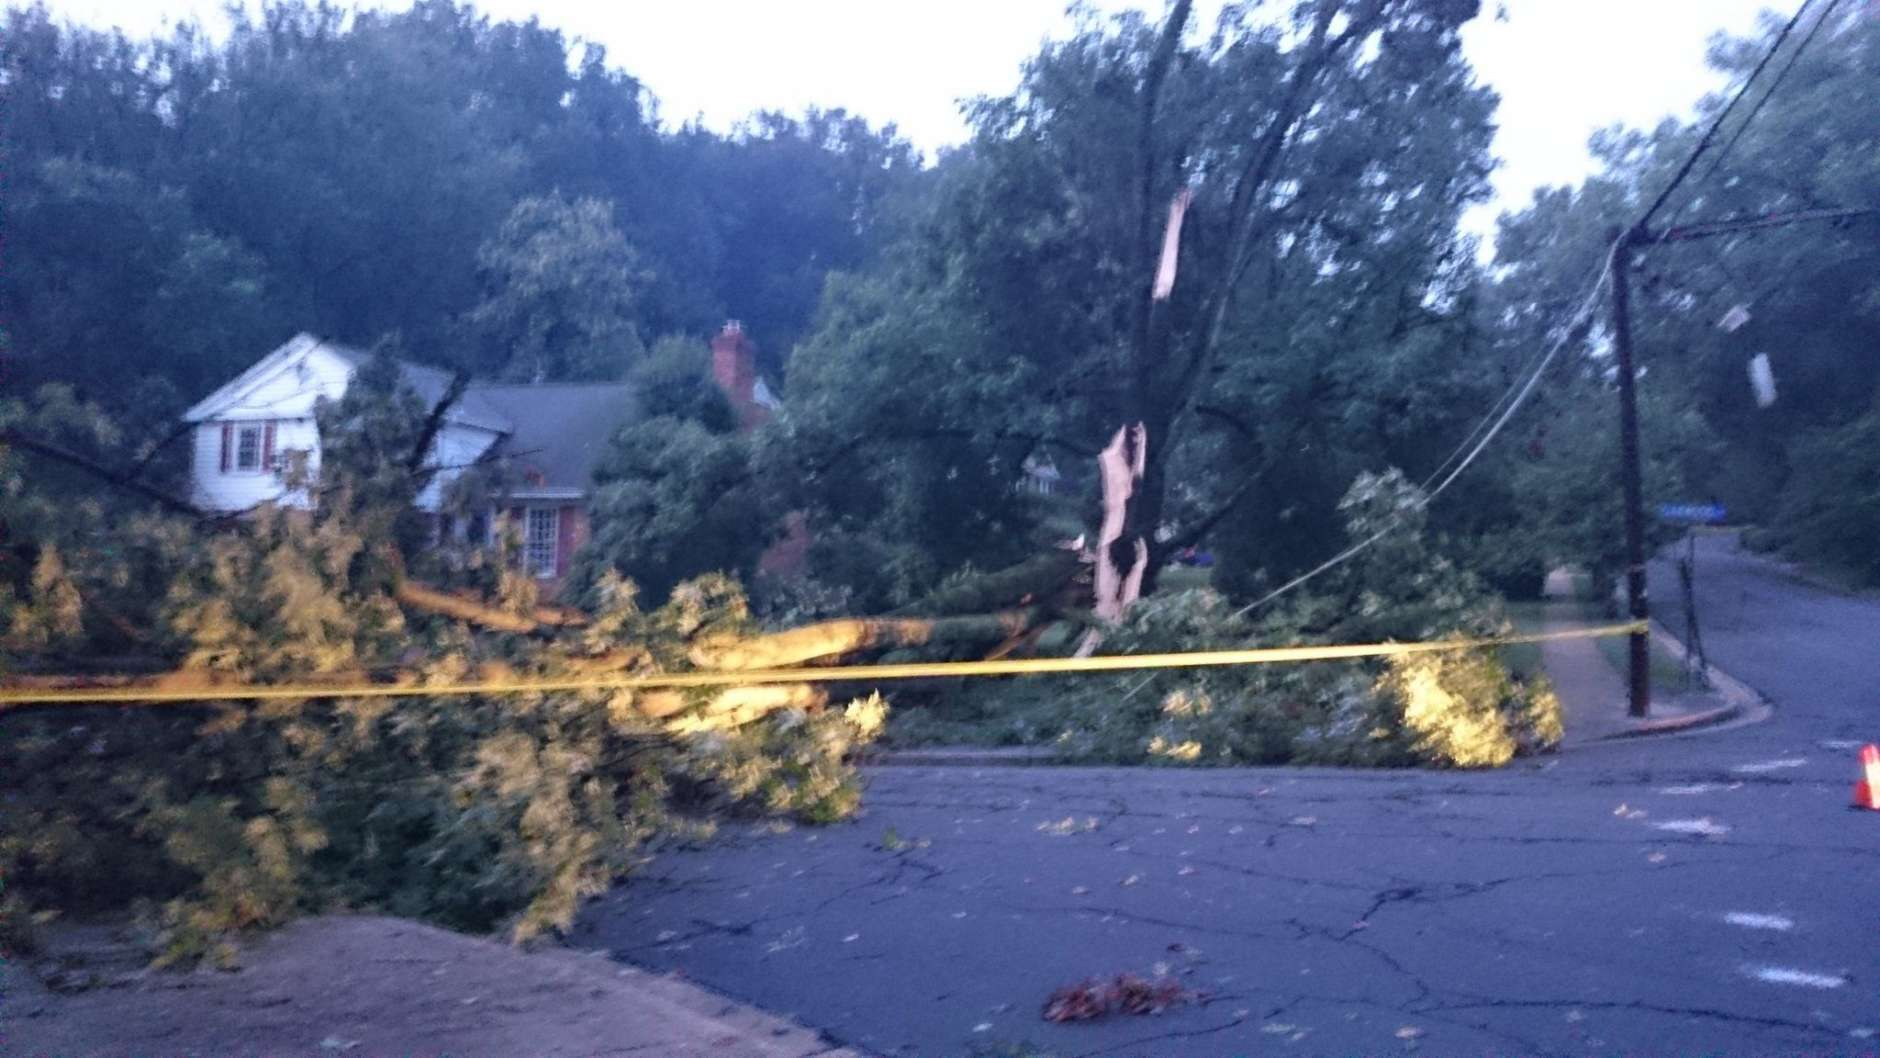 A split tree near Lake Barcroft following Thursday's storms. (WTOP/Dennis Foley)